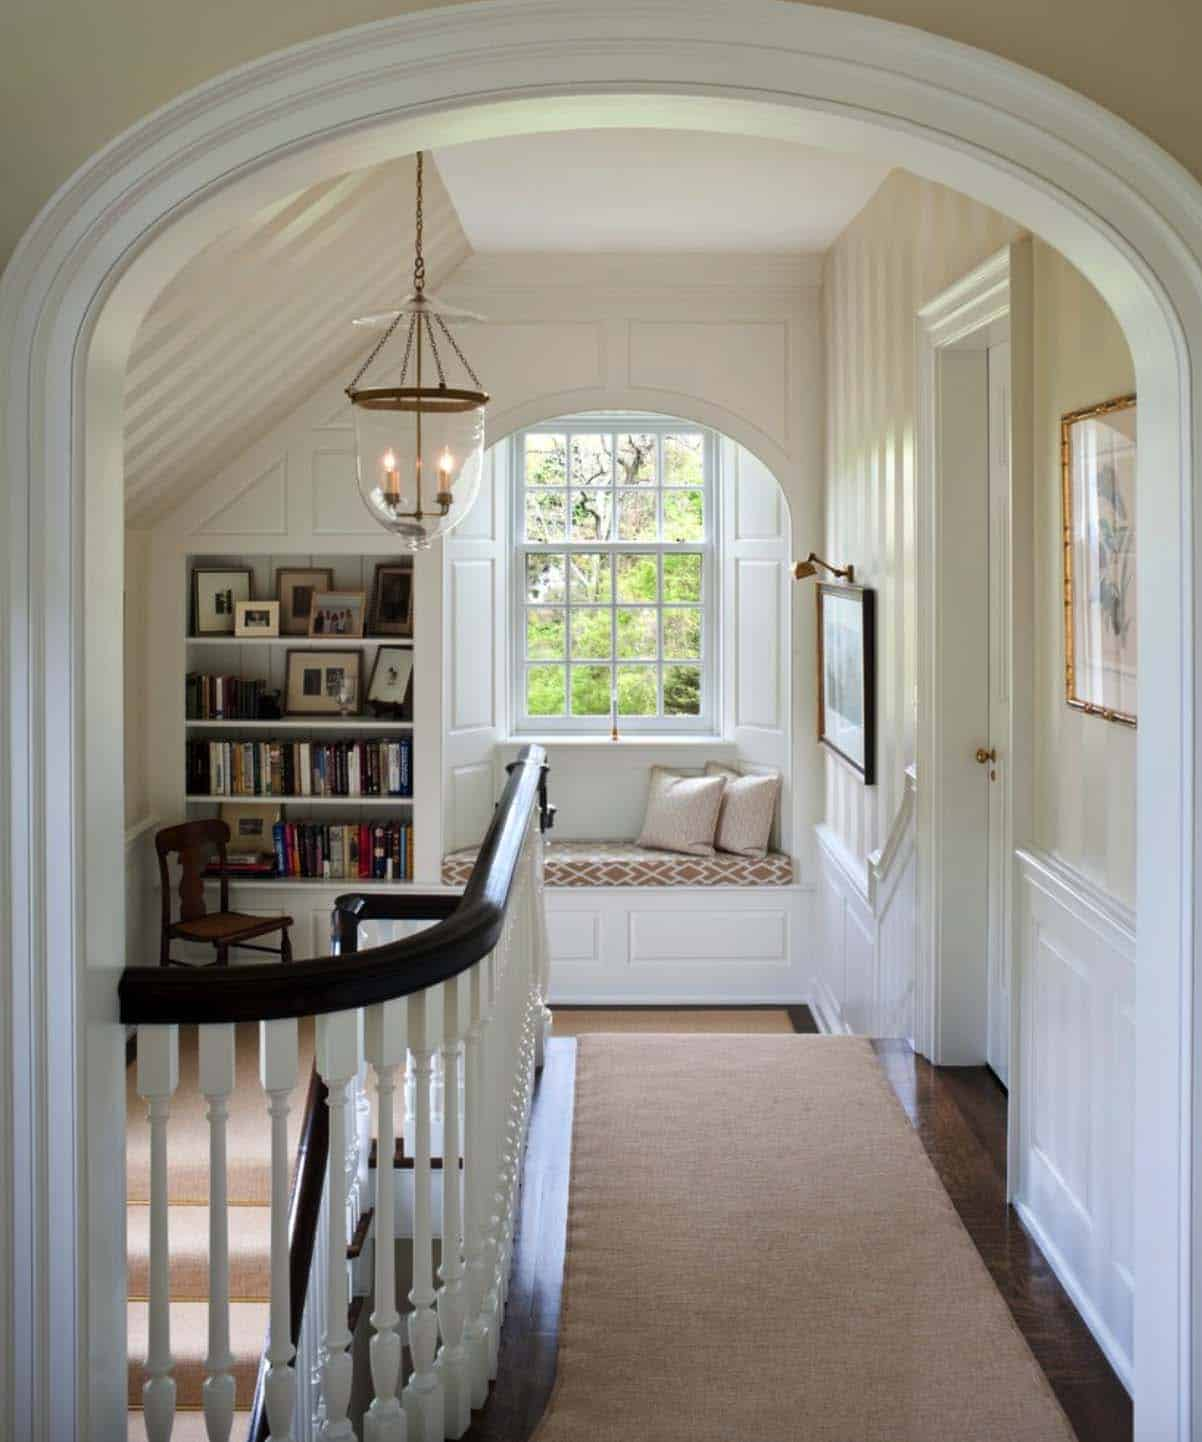 Cozy Reading Nooks For Lounging-16-1 Kindesign